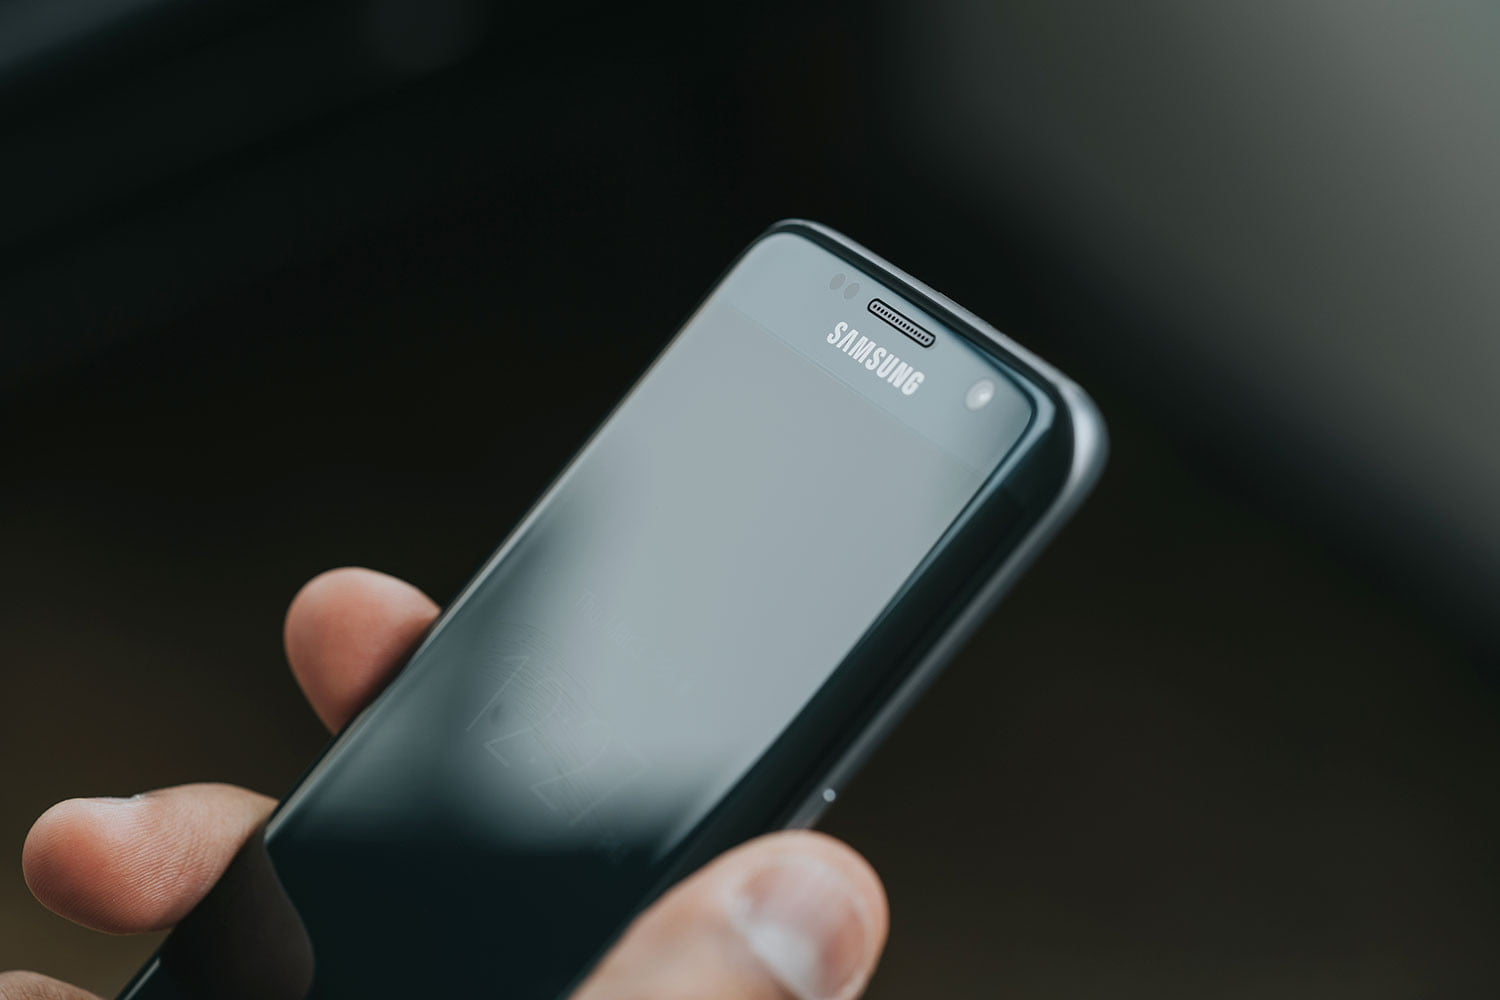 how to open samsung galaxy s7 edge